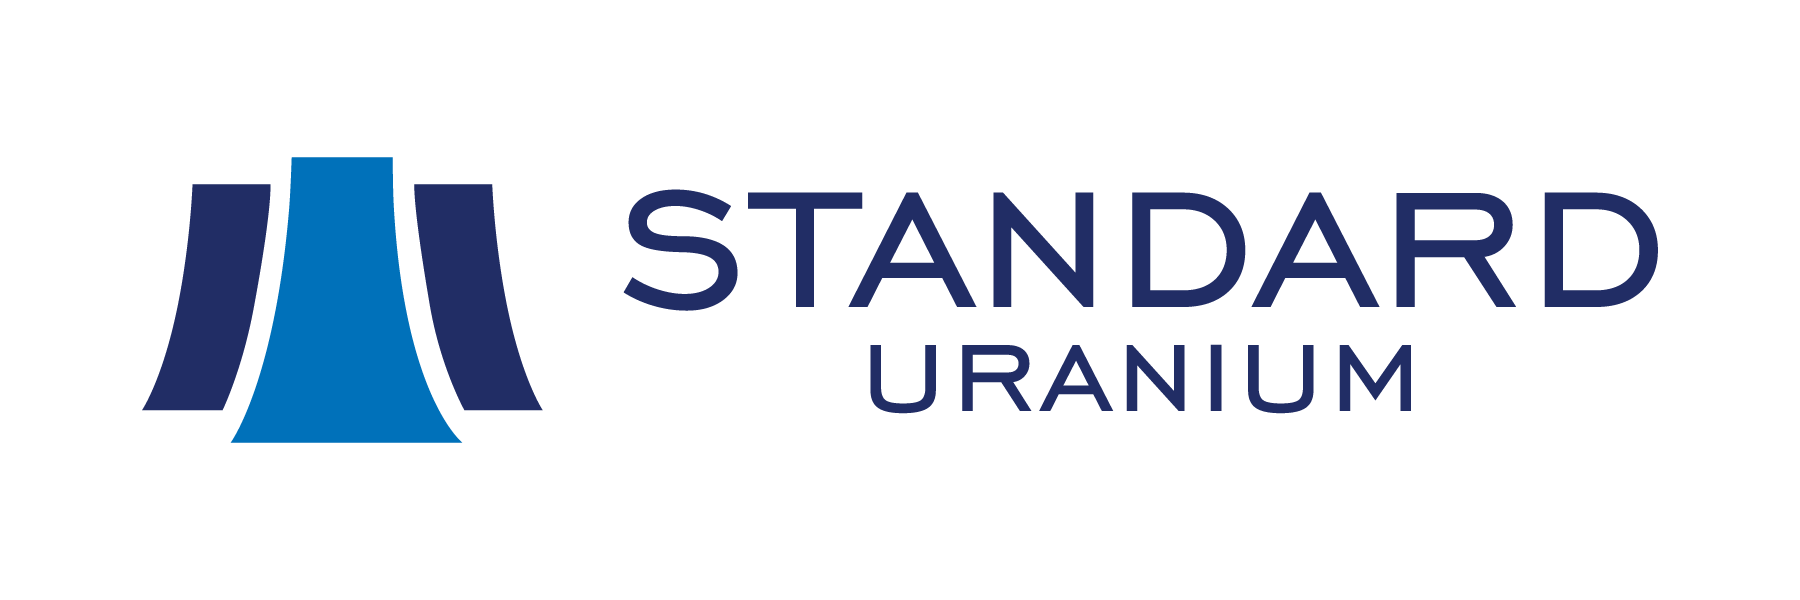 Standard Uranium Announces Key Additions to its Technical Team and Granting of Stock Options